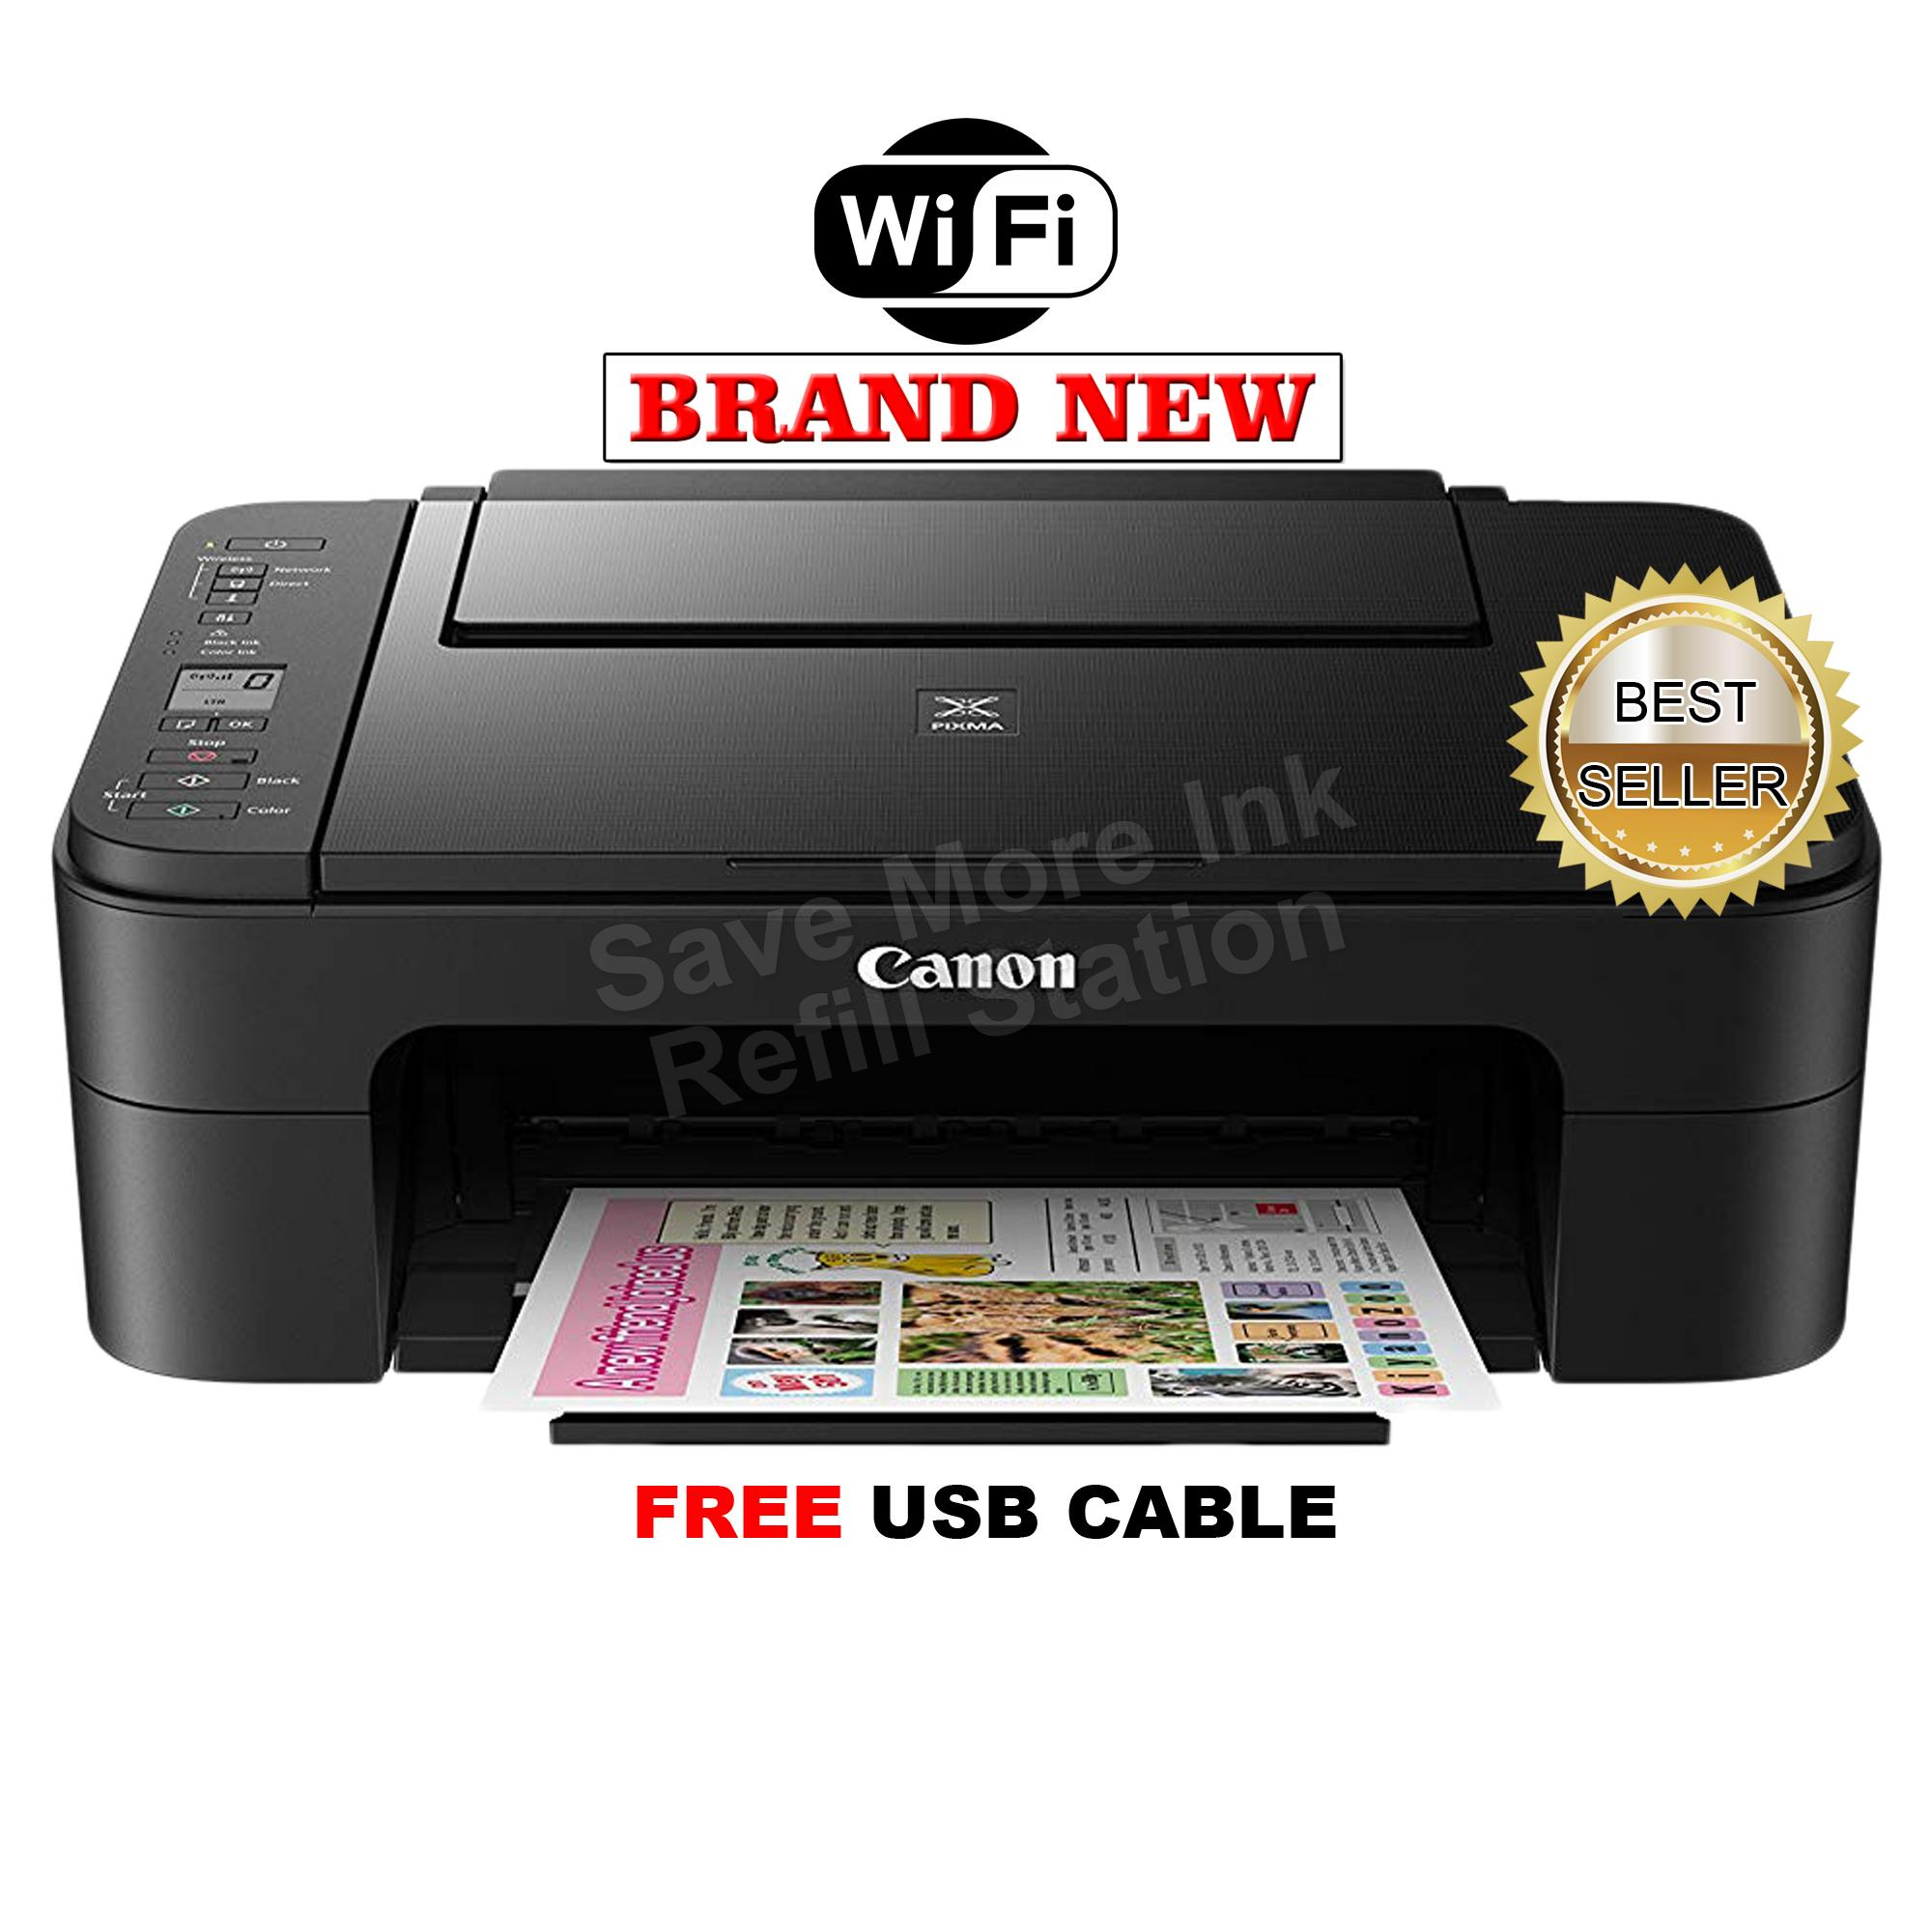 Canon pixma ts3160 print scan copy wi fi inkjet printer